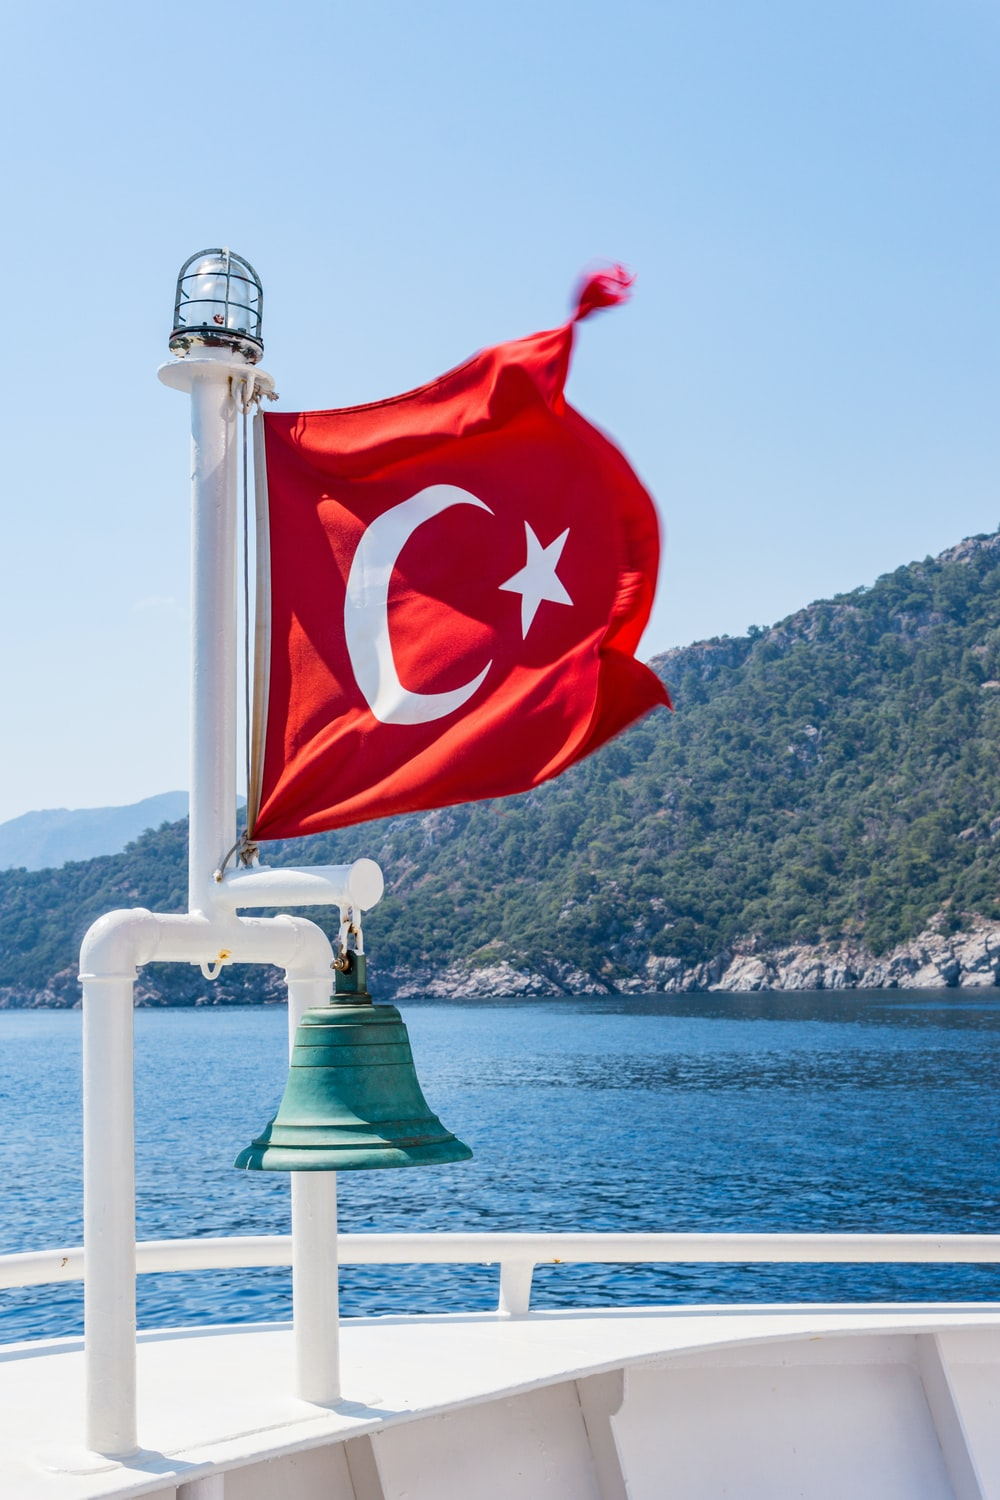 Turkey flag on pole with bell